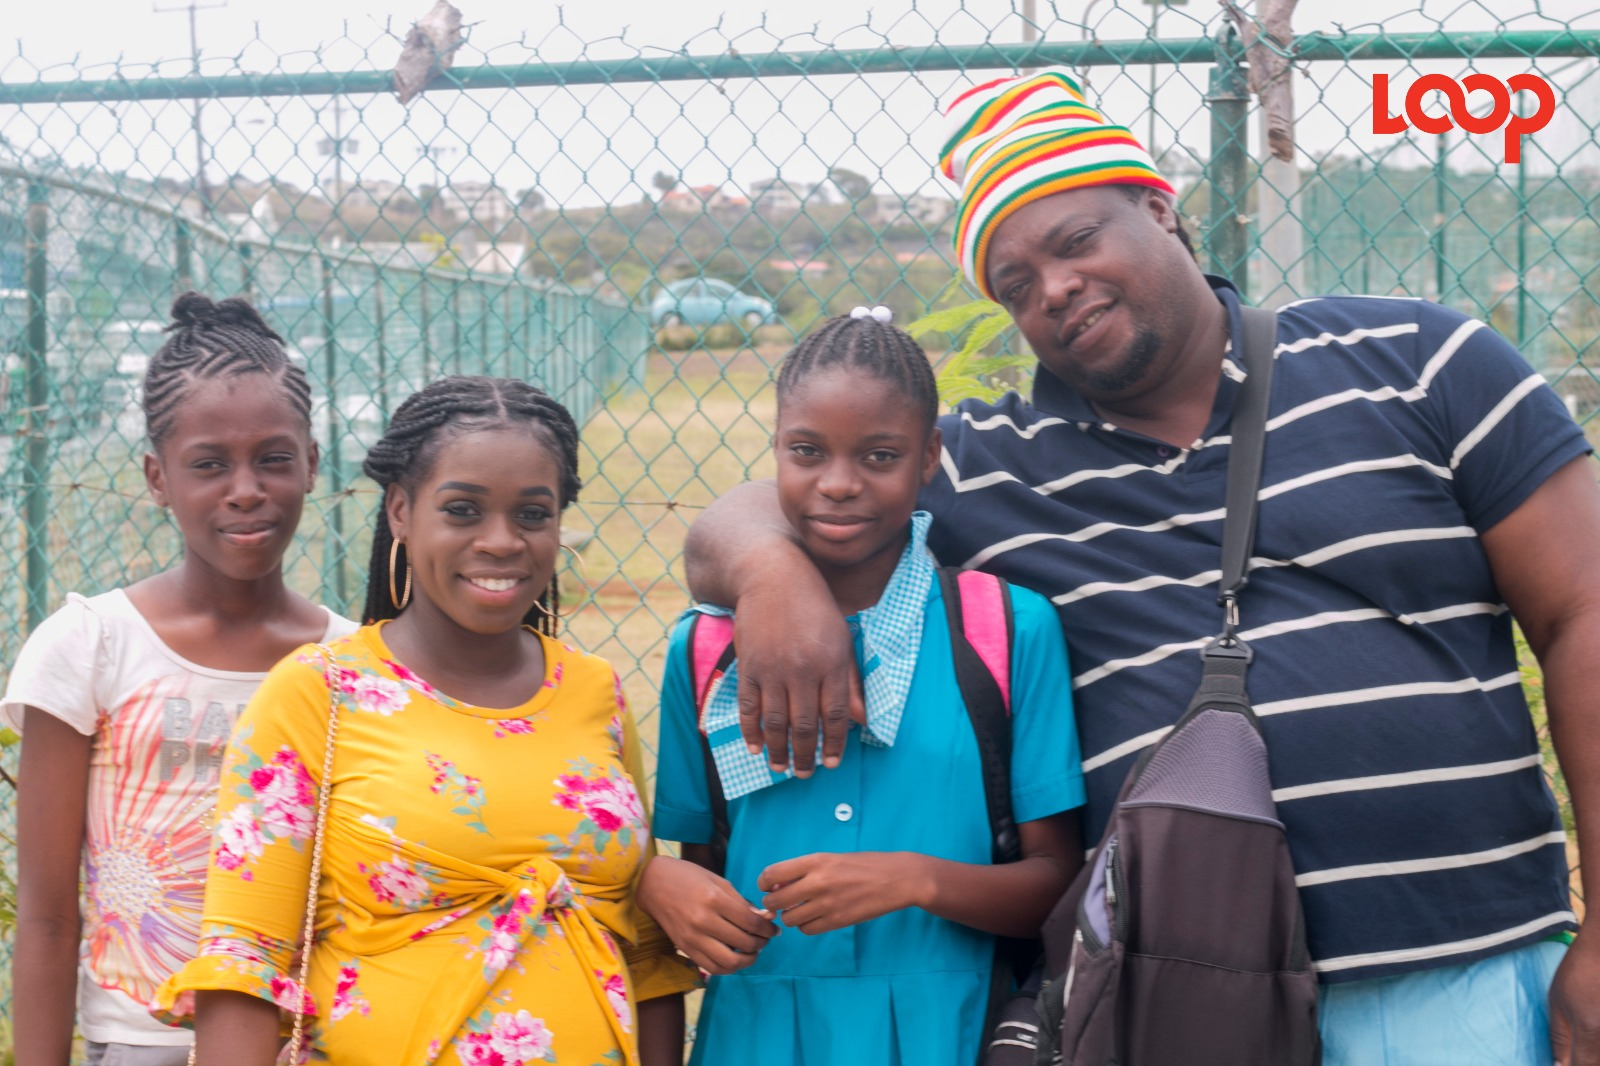 This family was photographed together outside Lester Vaughan Secondary School.